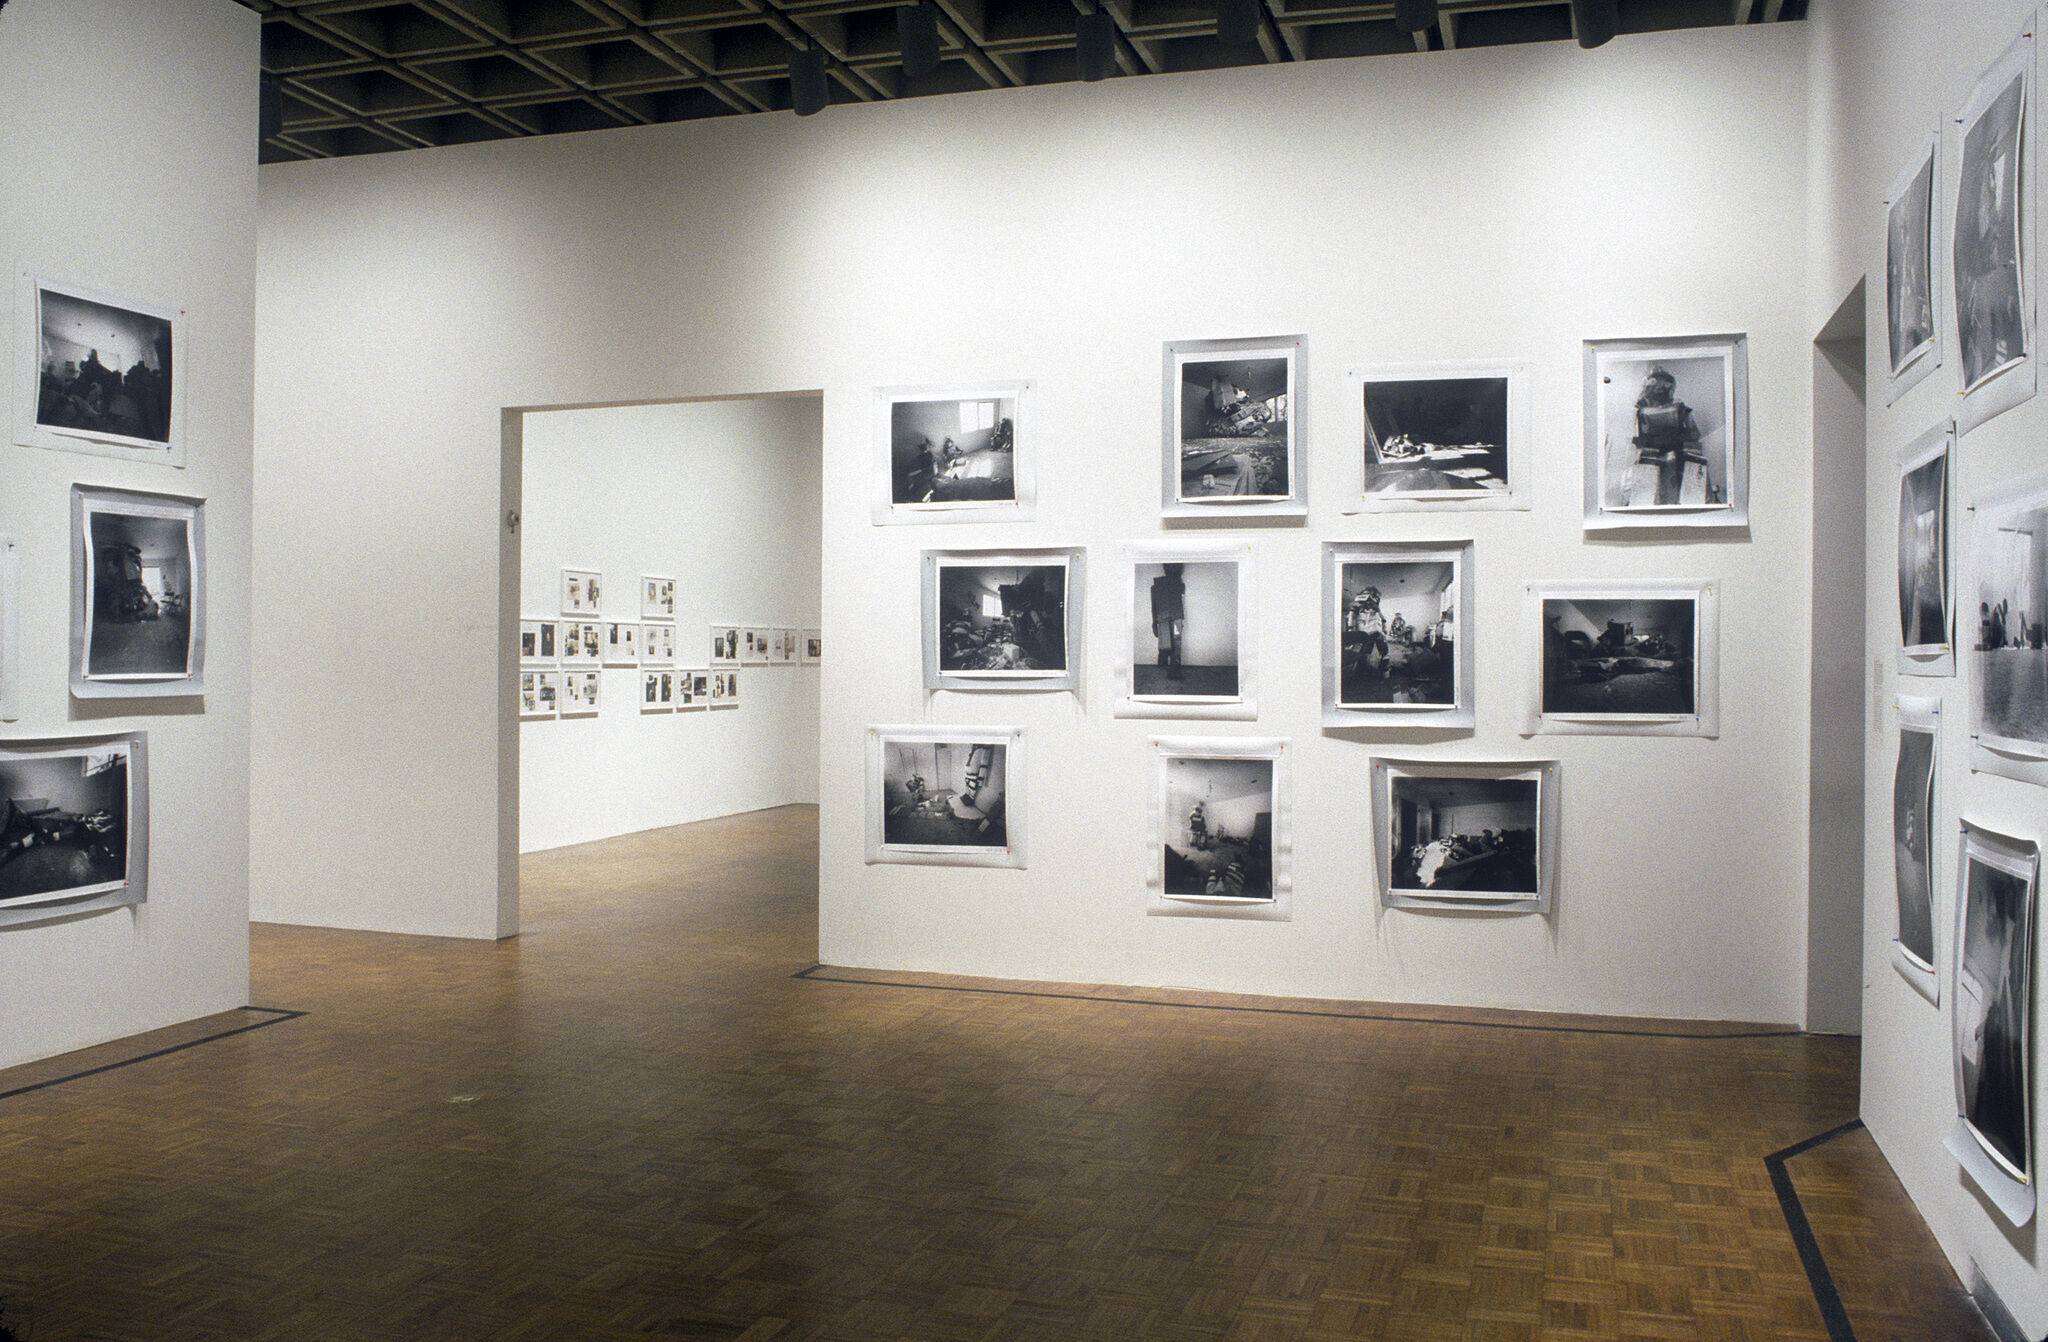 A gallery filled with black and white photographs displayed on the walls.